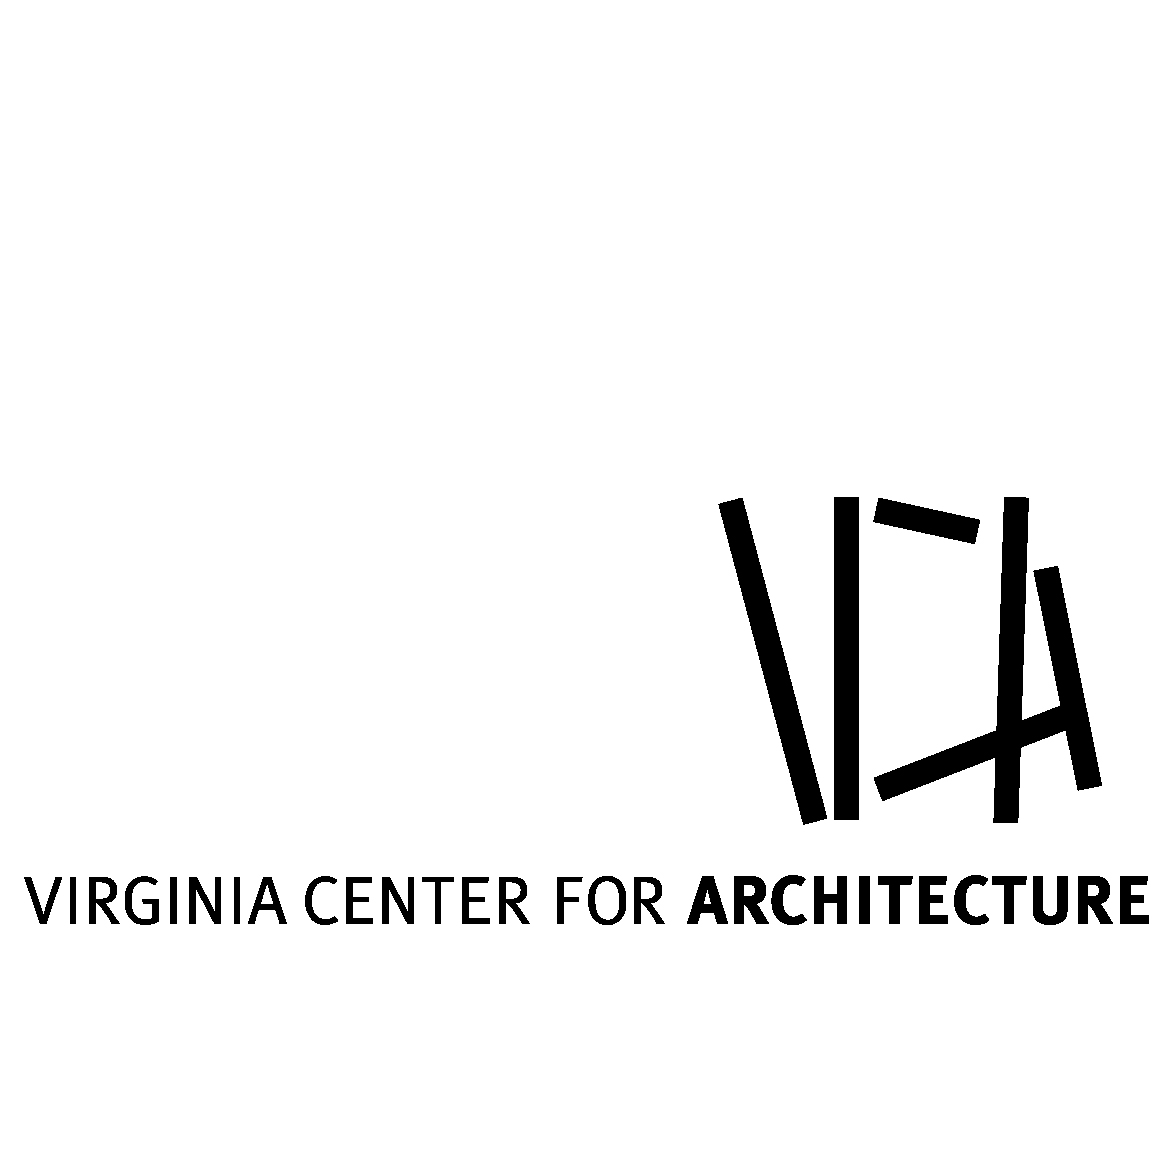 Group logo of Virginia Center for Architecture